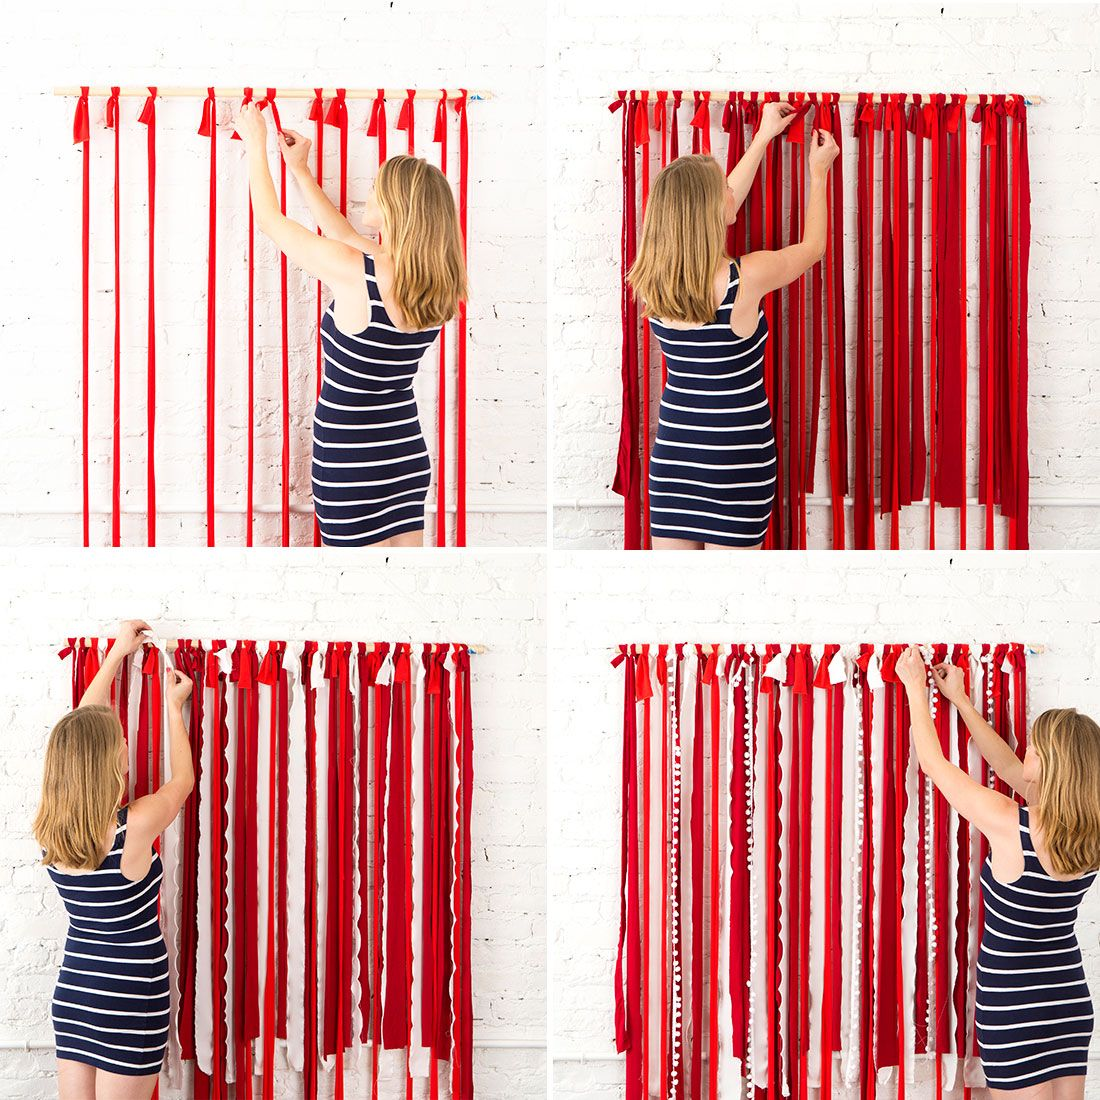 How to make a fabric backdrop - Make This Instagram Worthy Photo Booth Backdrop For Your 4th Of July Party